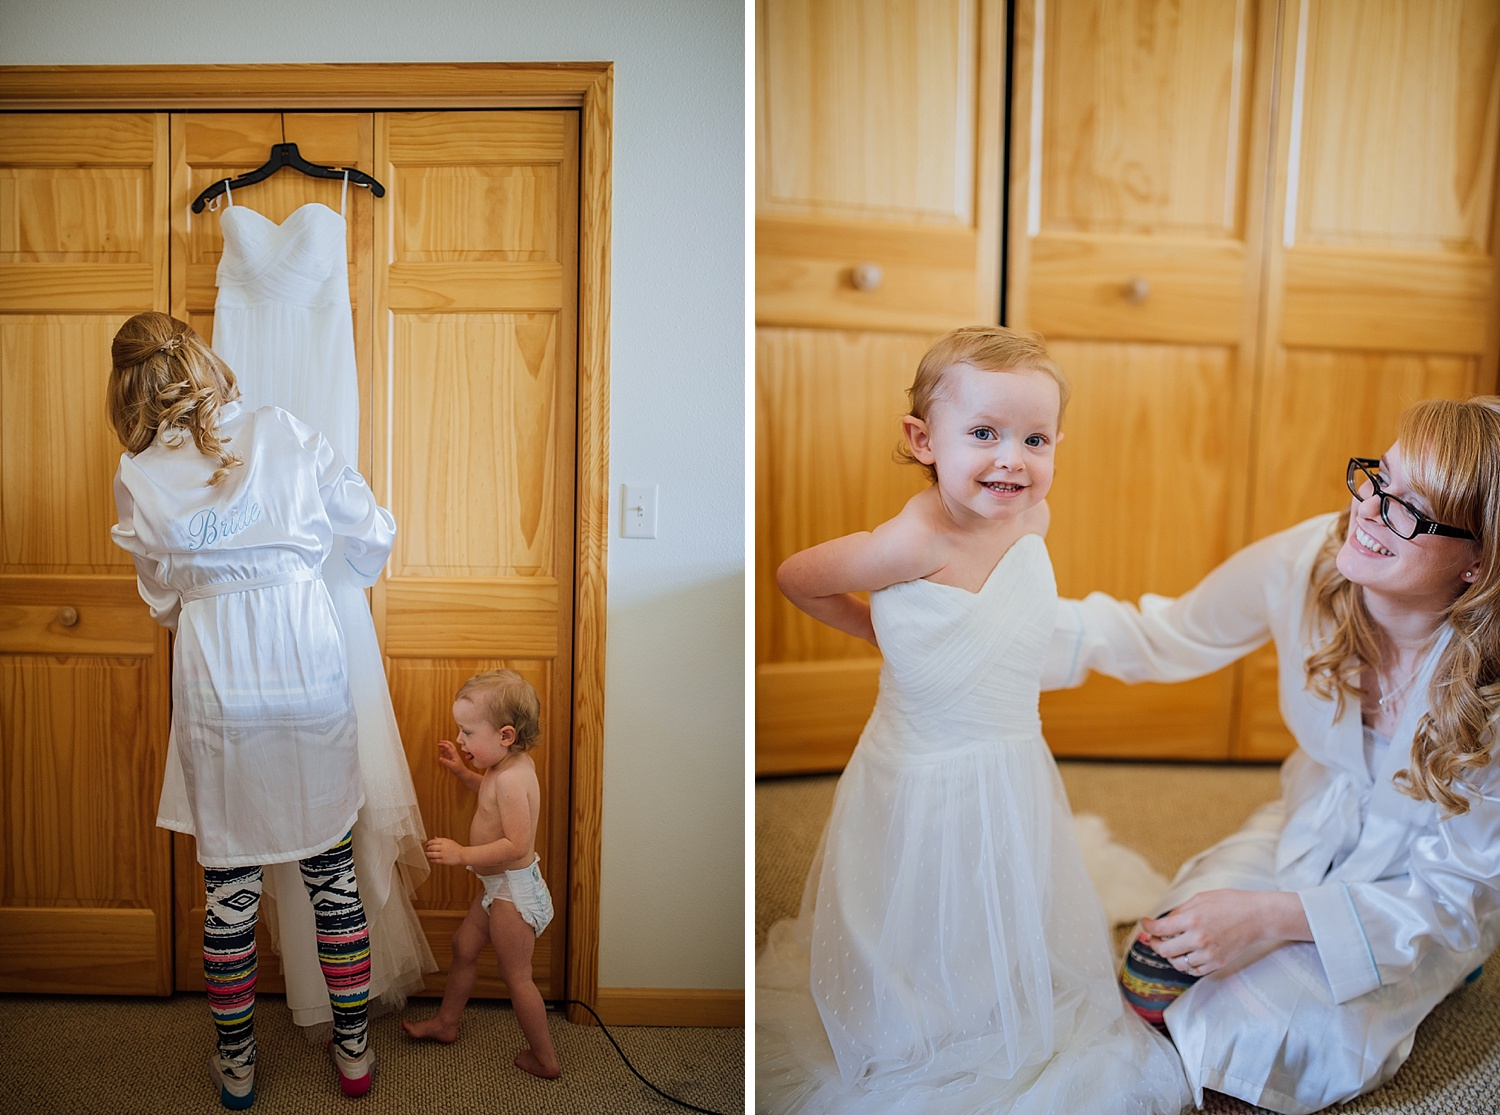 Aw! I love this little girl trying on her mom's wedding dress. This is precious! Photo by Maddie Mae Photography